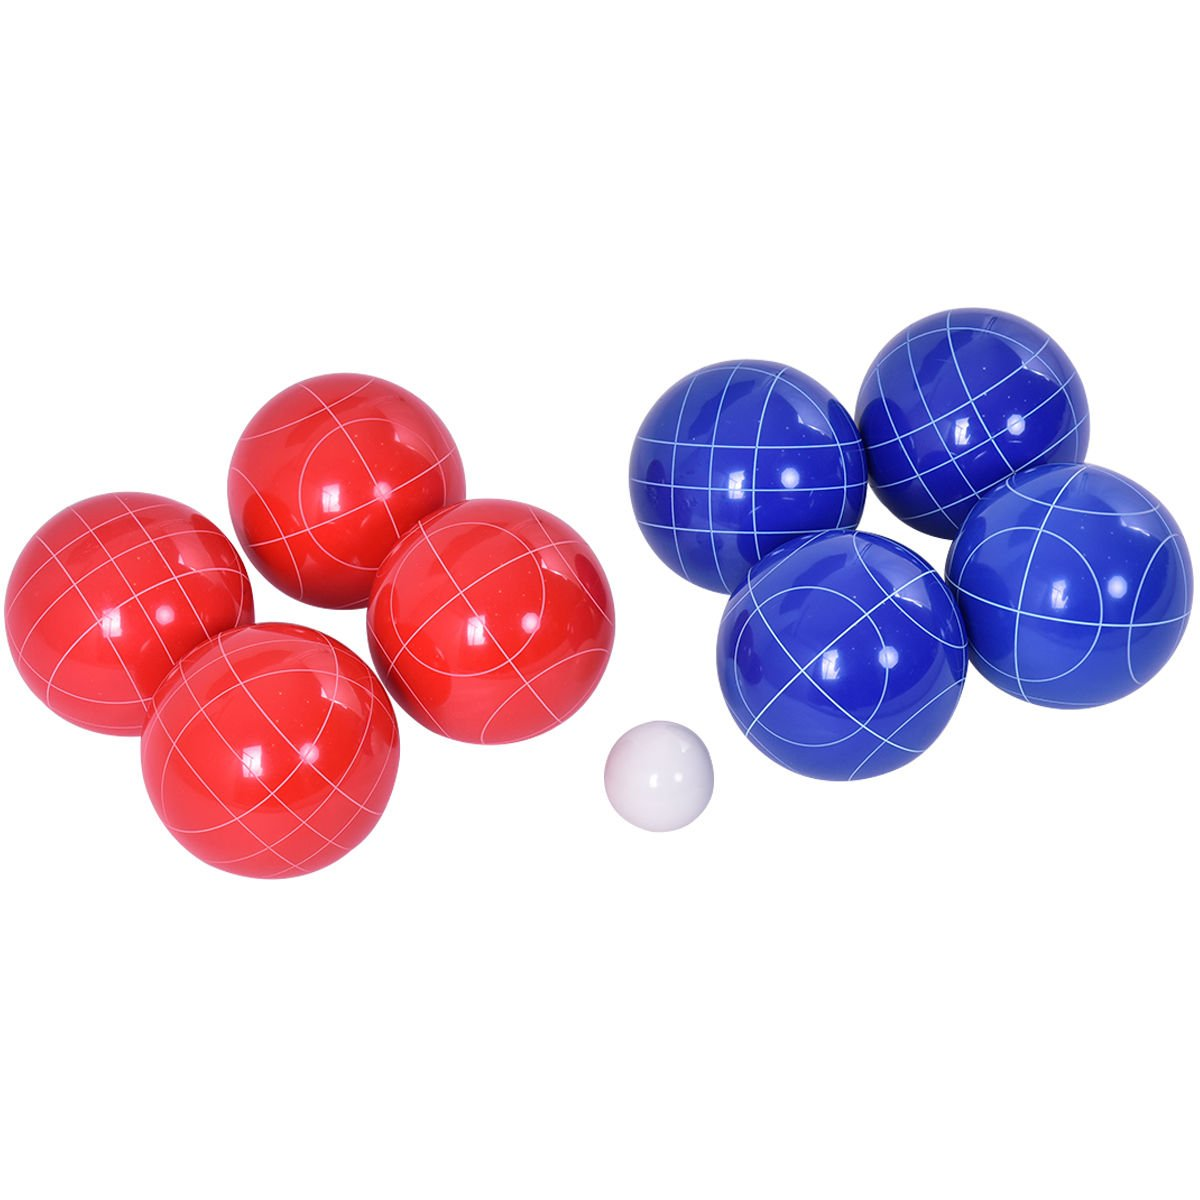 Goplus Bocce Ball Set W/ 8 Red & Blue Balls Pallino Lawn Game Outdoor Sports by Goplus